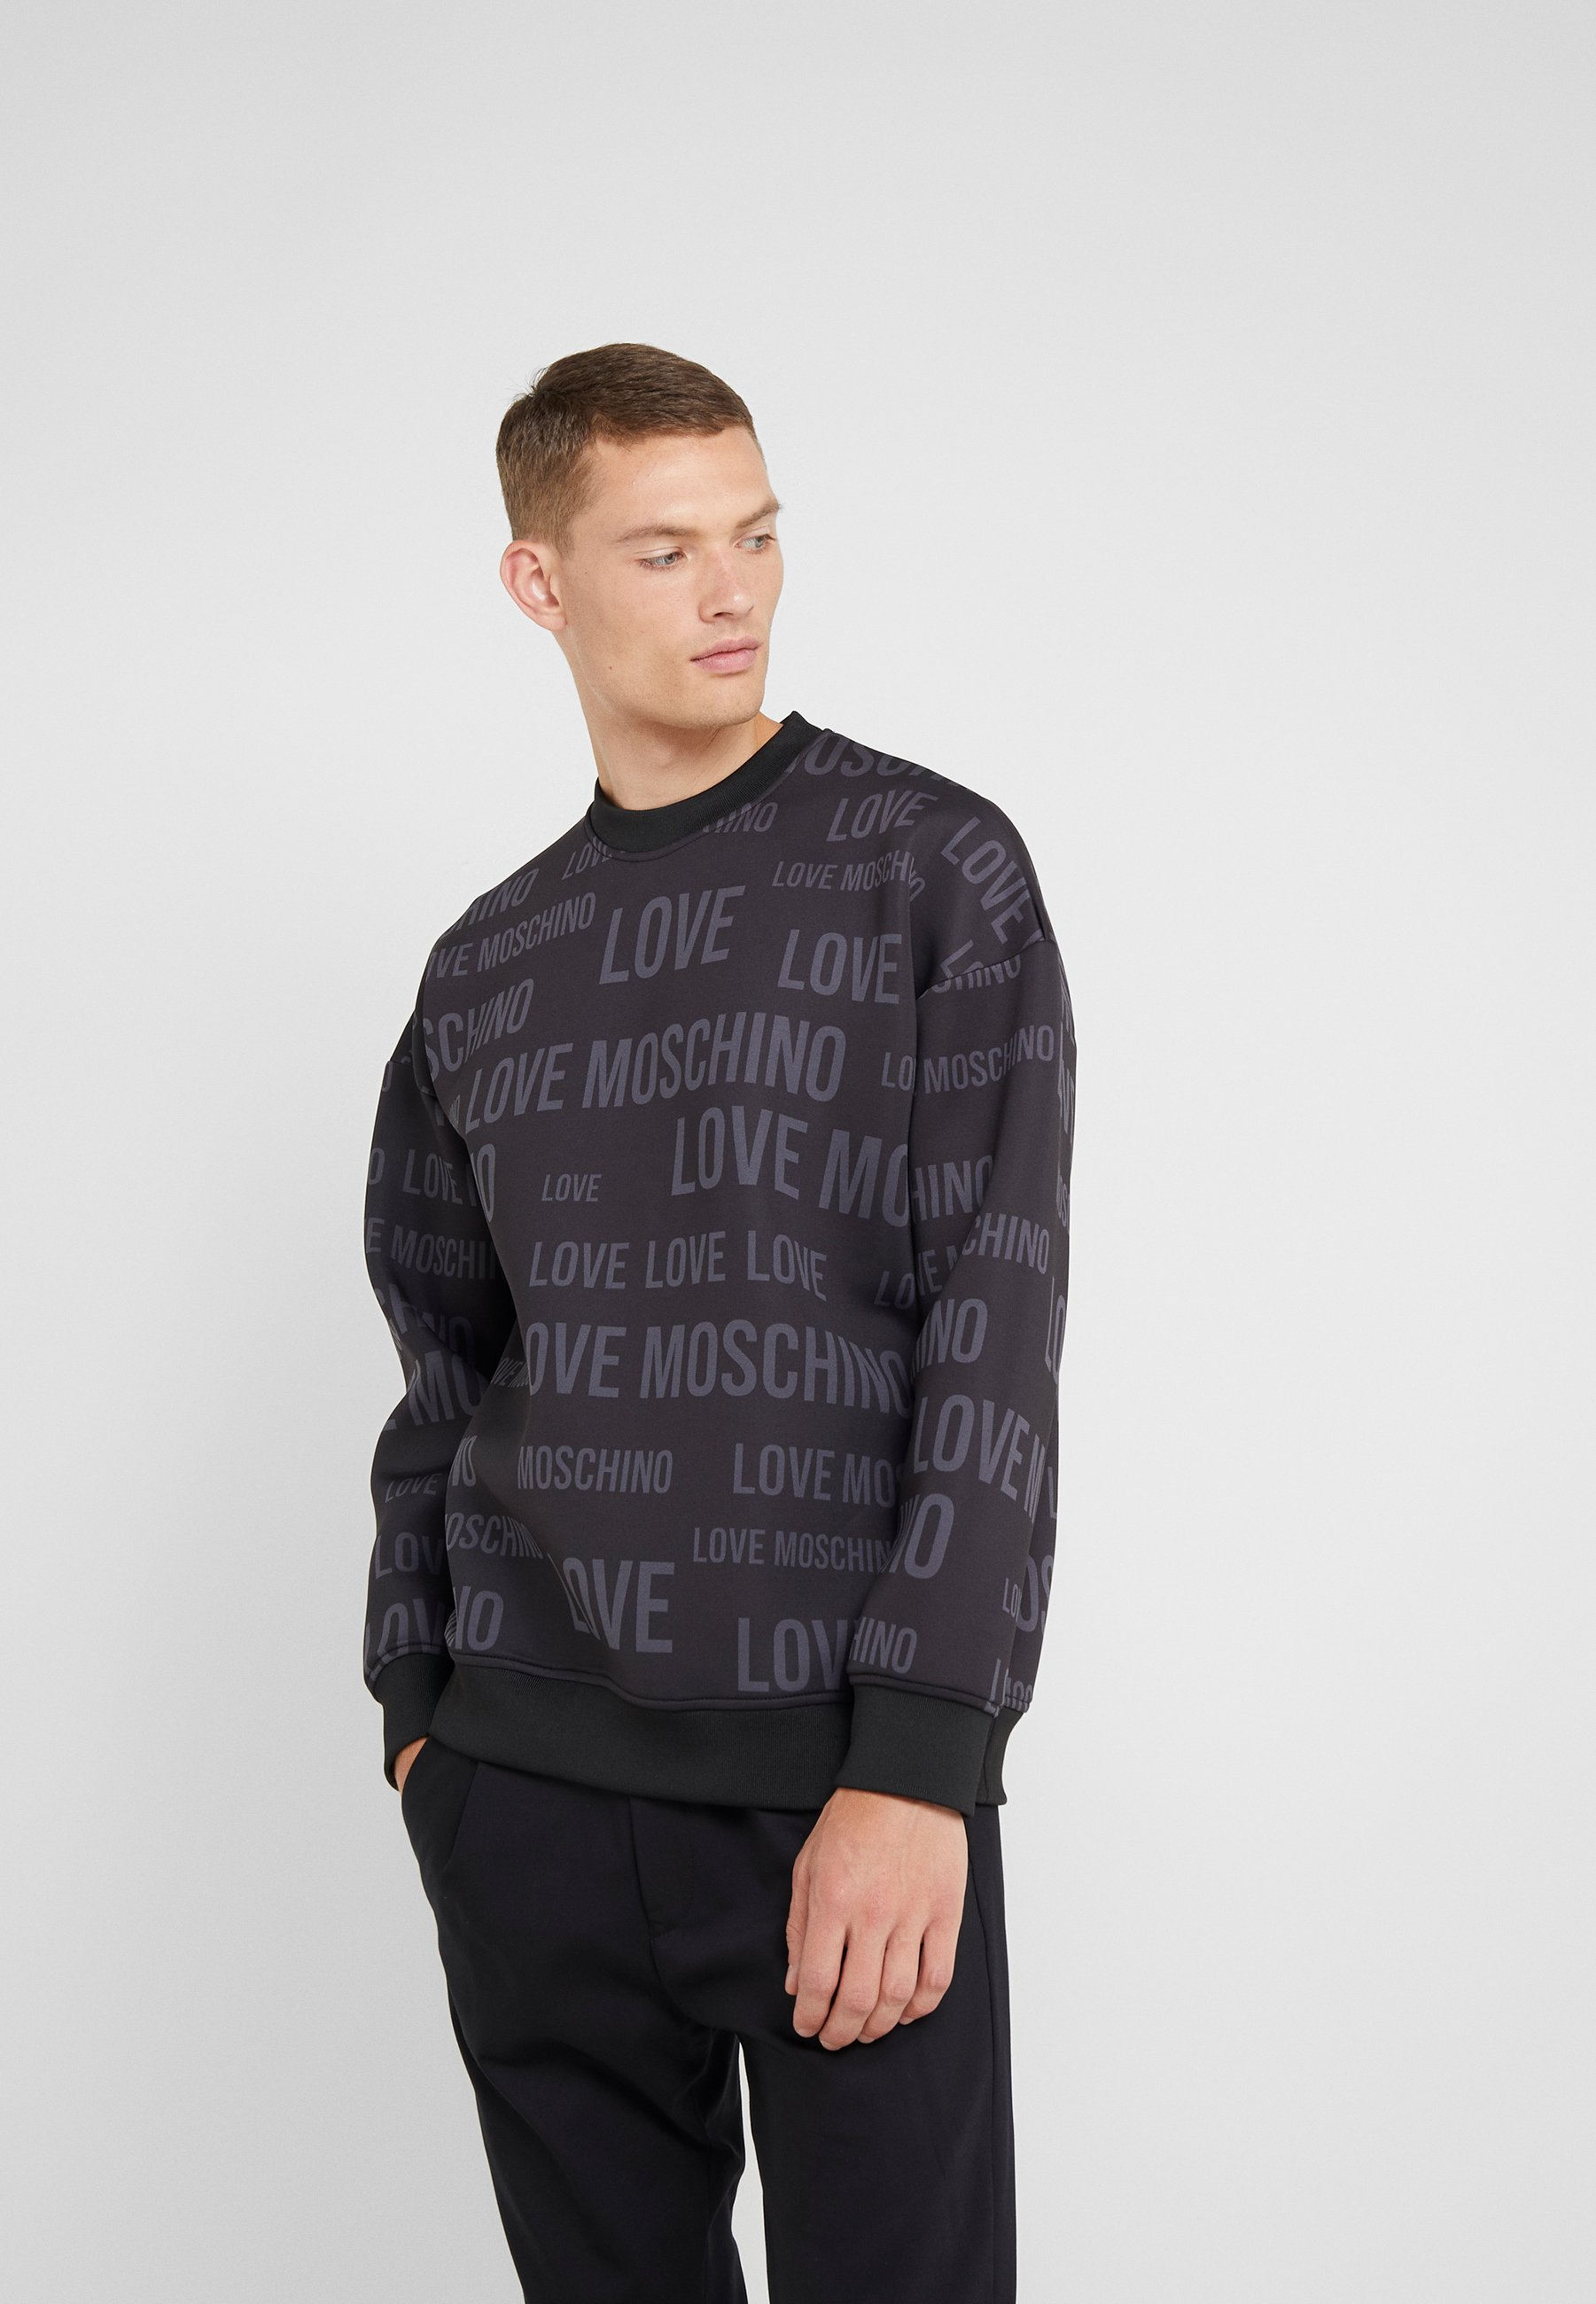 Love Moschino Moschino Moschino Love Moschino Love SweatshirtAntracite SweatshirtAntracite SweatshirtAntracite Love Moschino SweatshirtAntracite Love Y7gbfy6